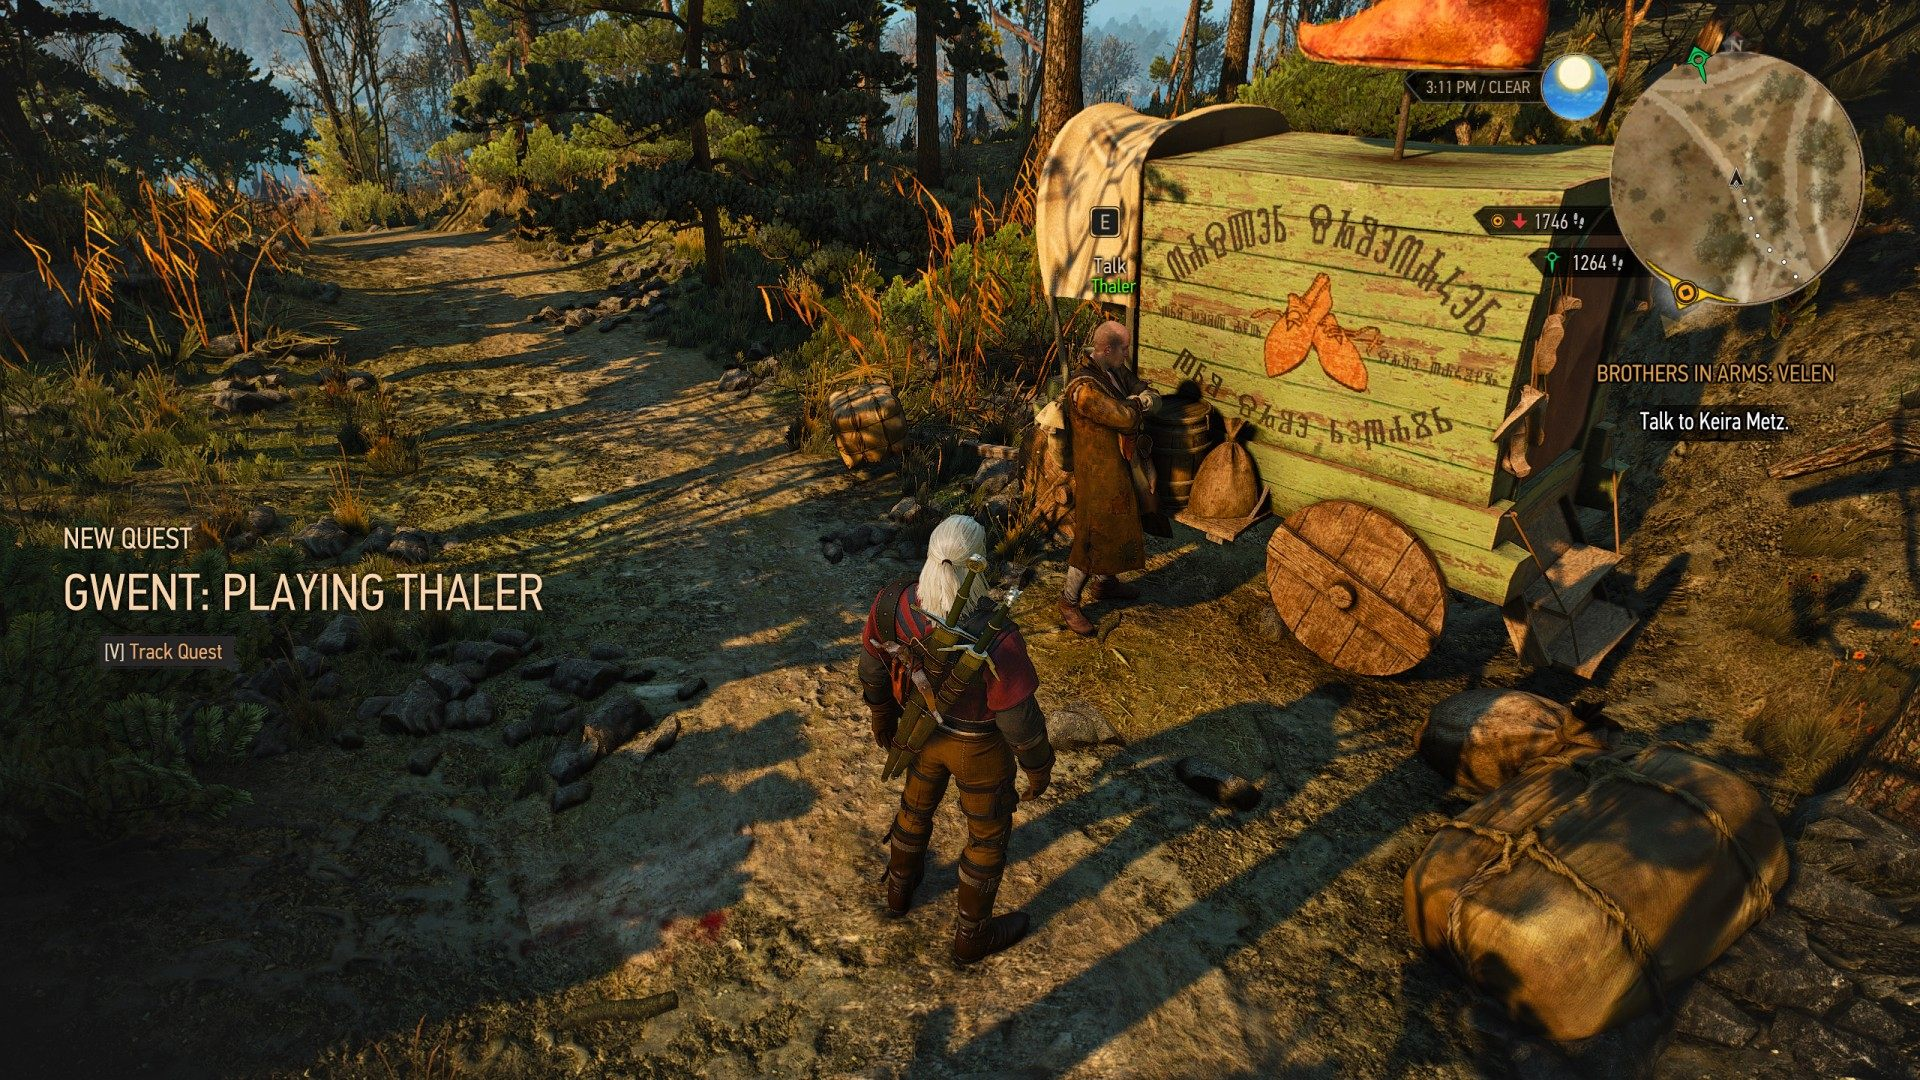 gwent playing thaler witcher 3 wild hunt quest